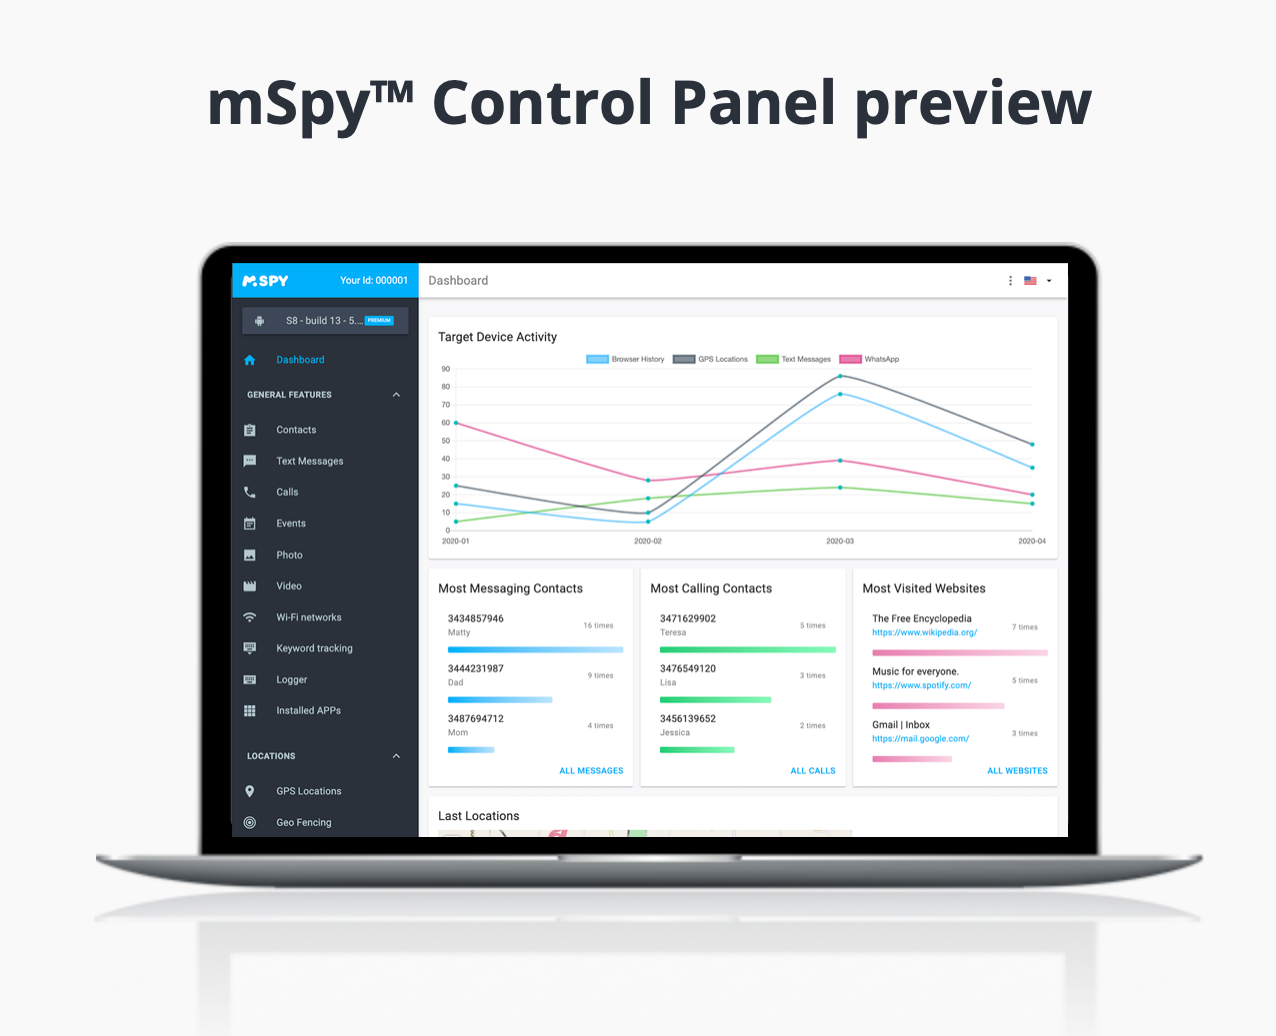 mSpy Control Panel preview